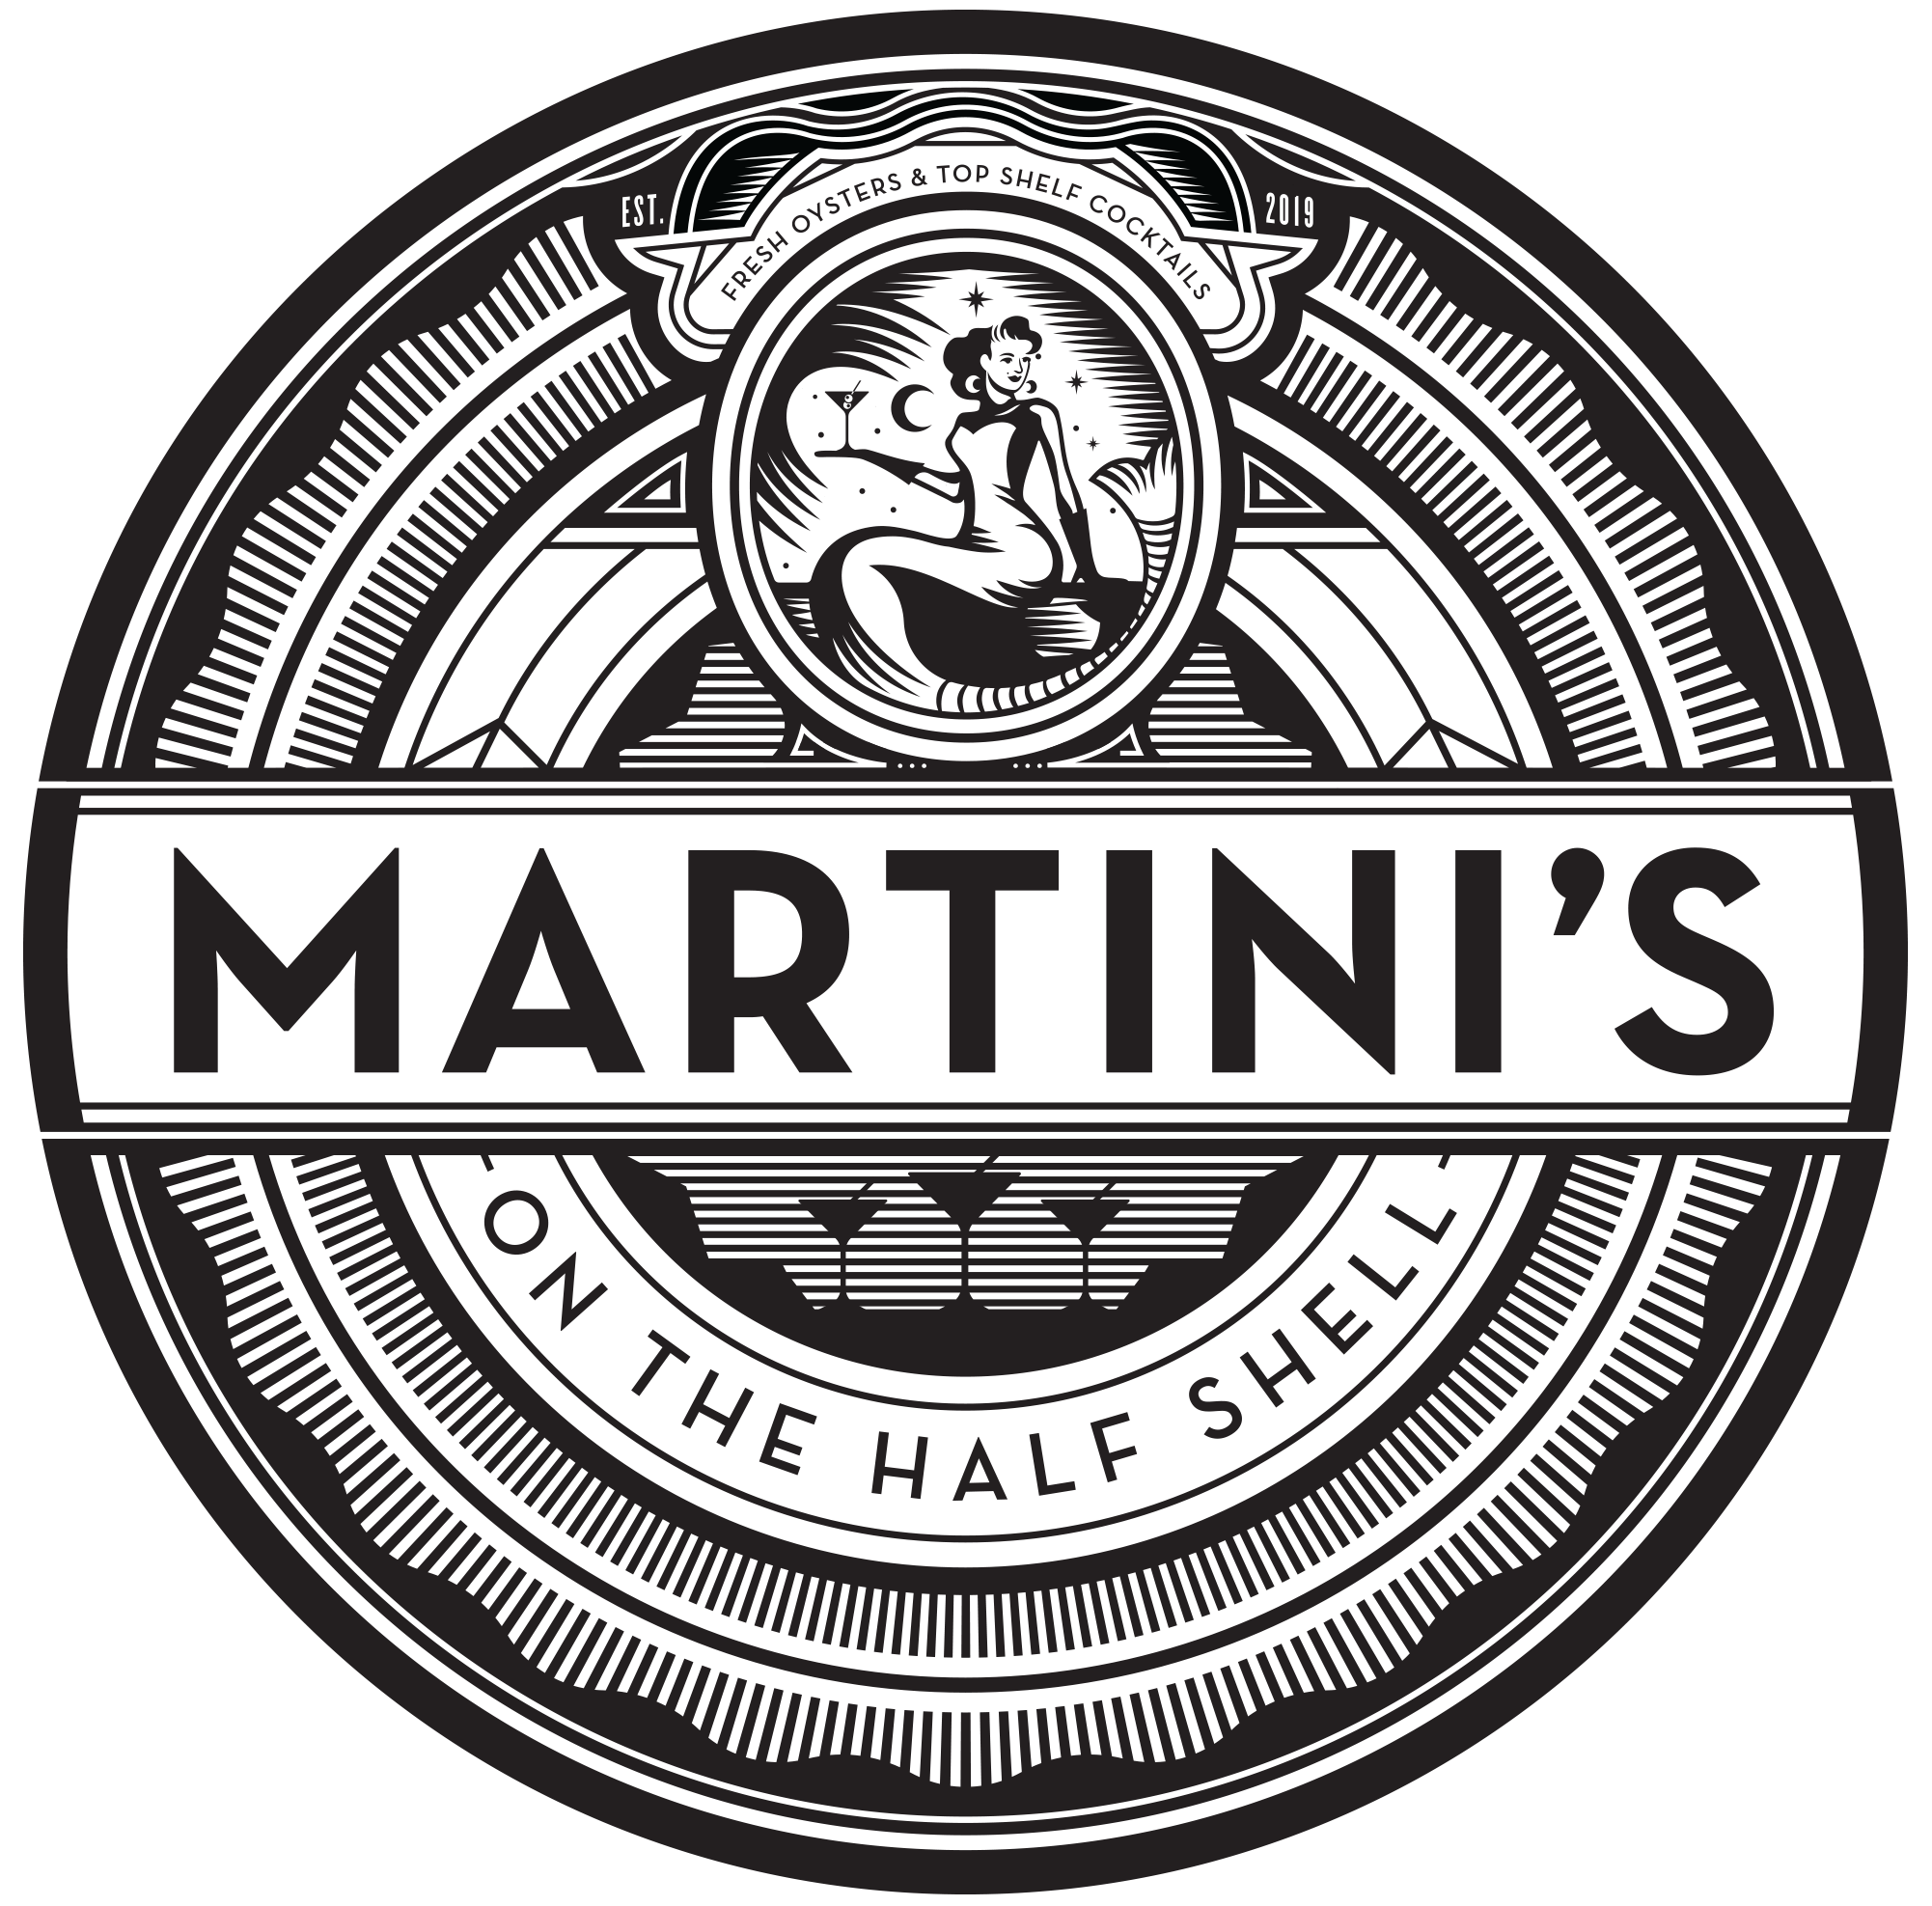 Martini's_FINAL.png